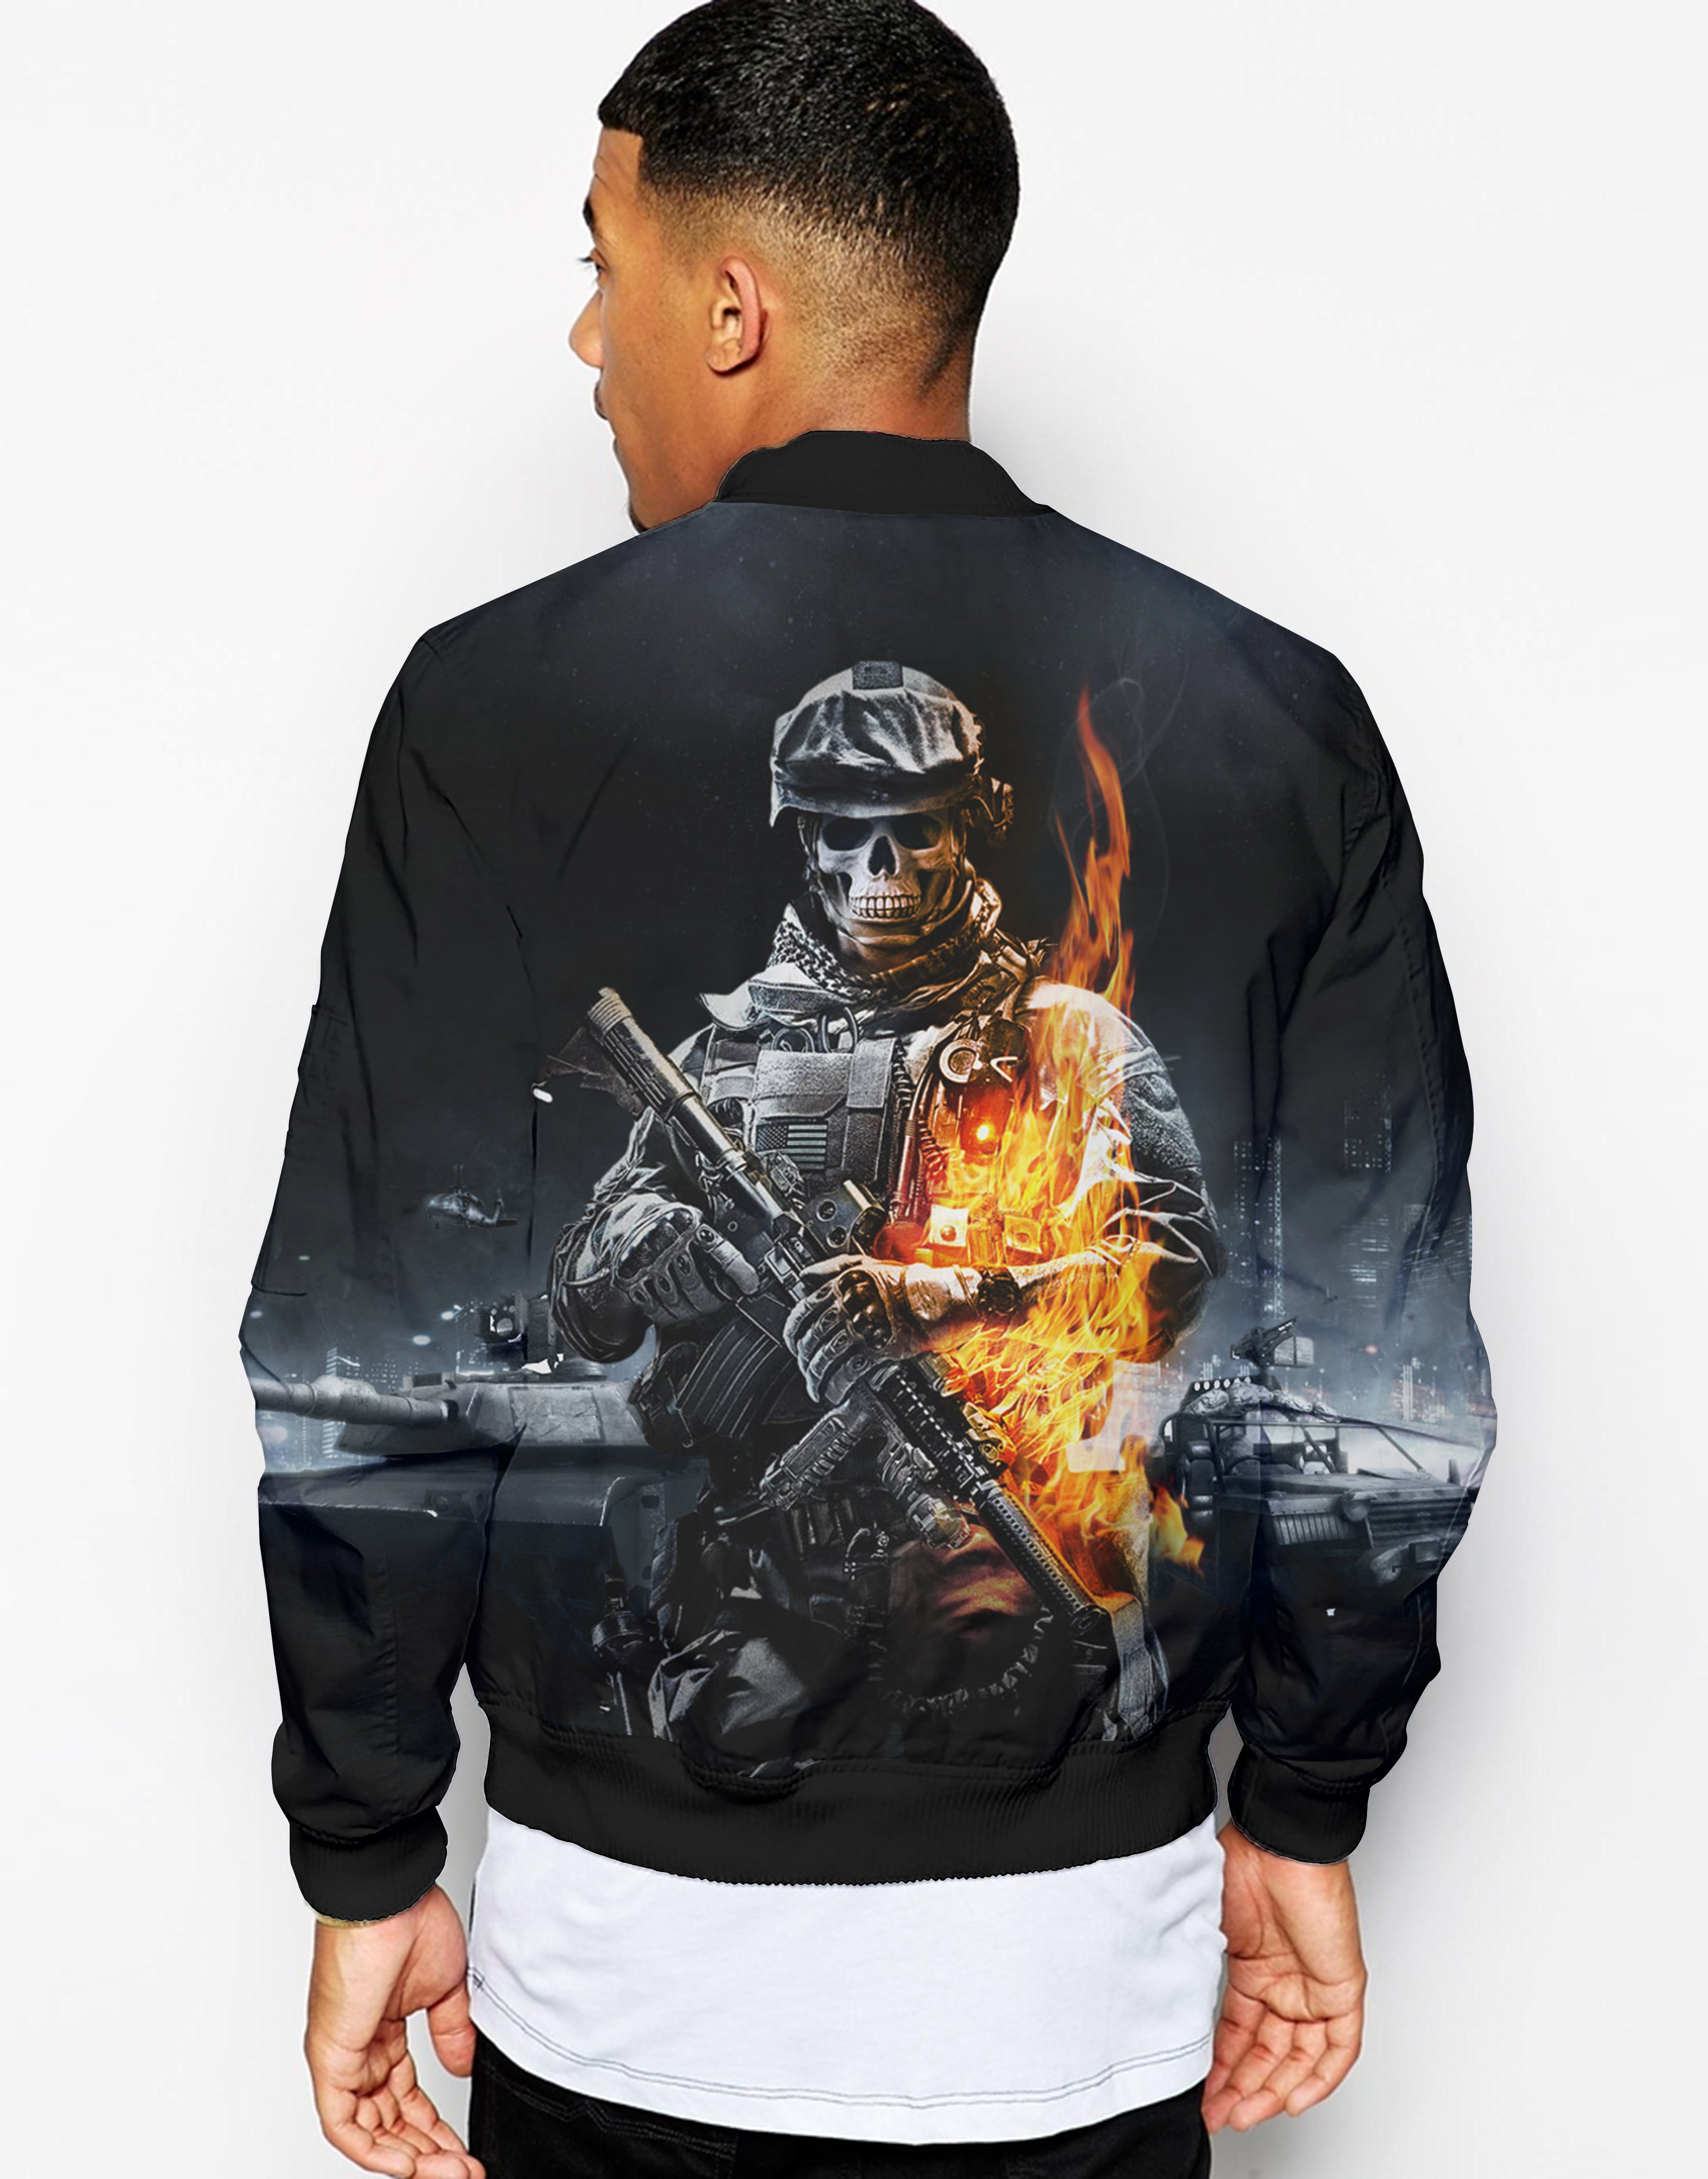 Unisex 3D Bomber Jacket - FireFighter FIRE DEPT. - designfullprint